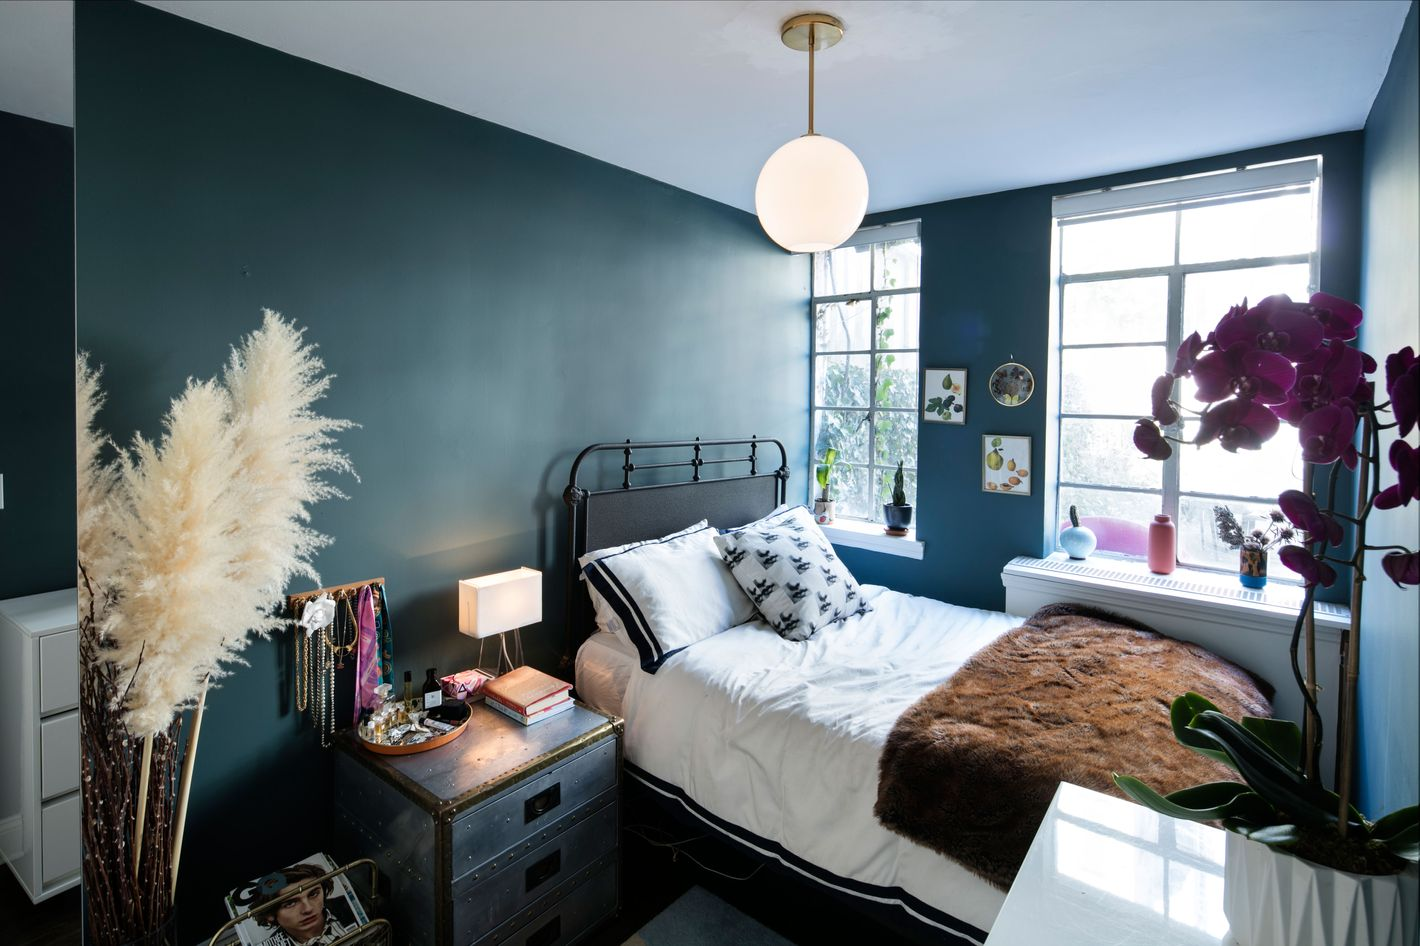 How To Make A Dark Room Brighter Solutions 2018 The Strategist New York Magazine